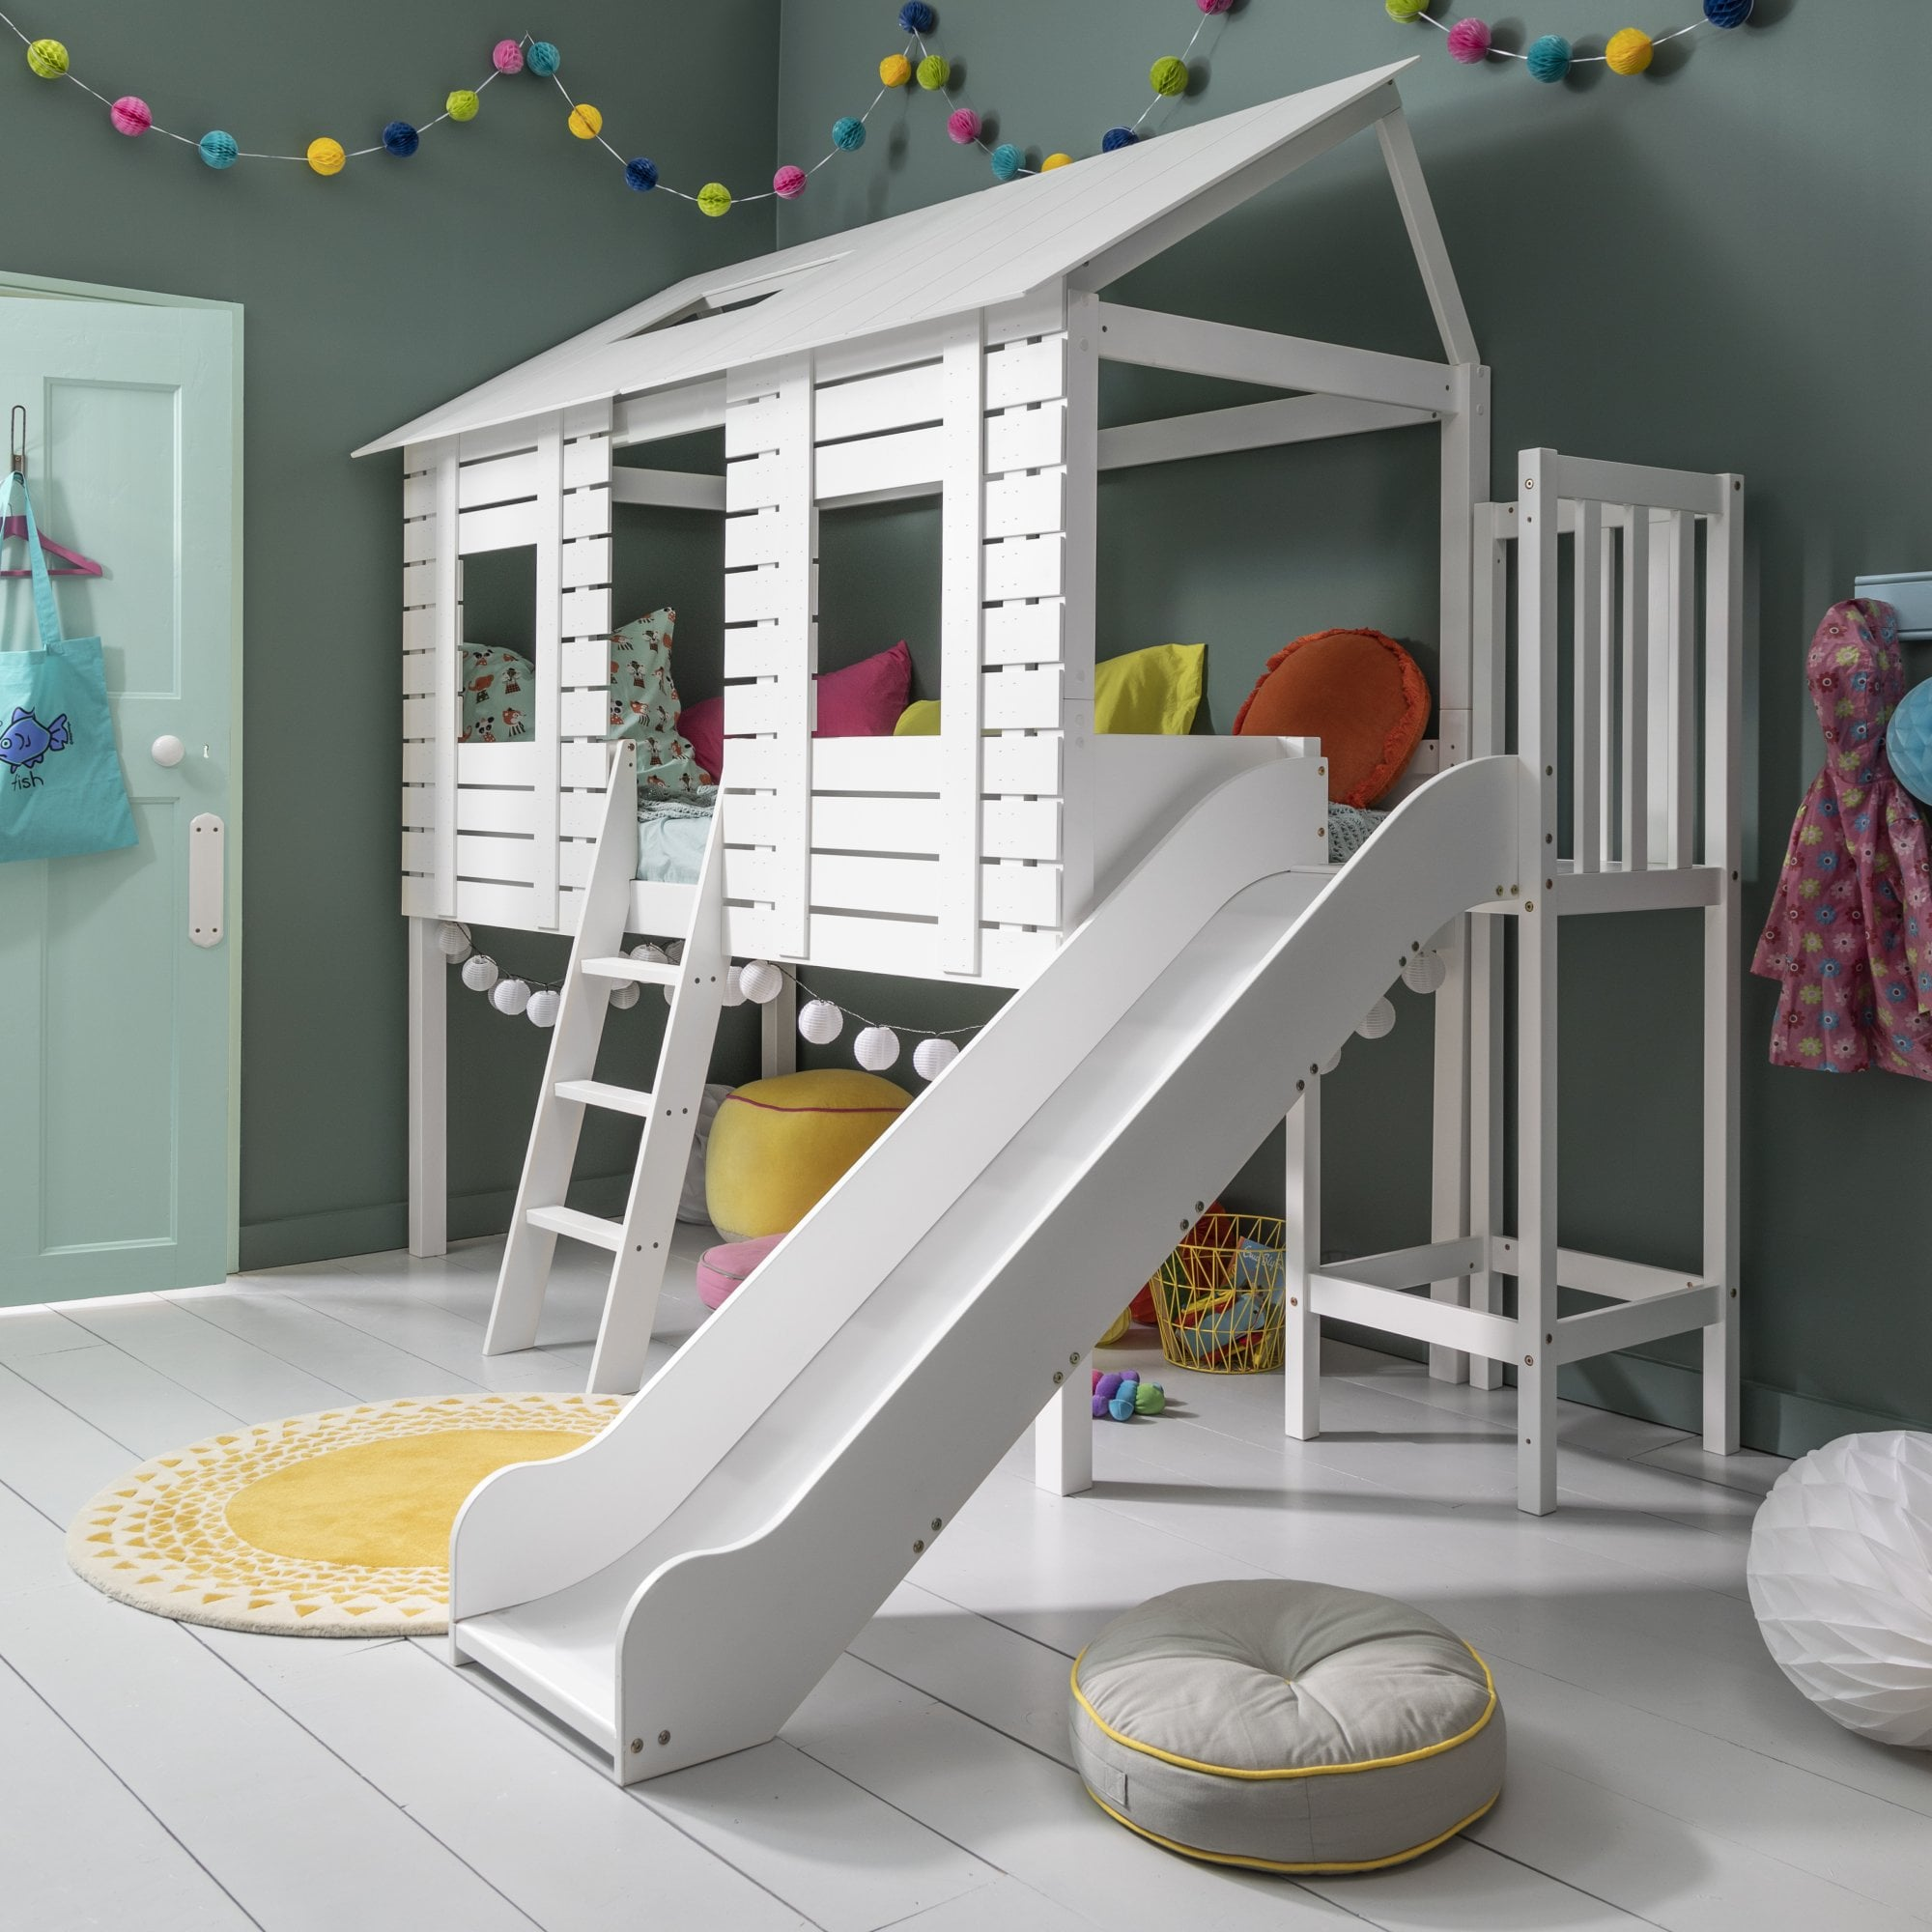 Christopher Midsleeper Treehouse With Slide In White Noa Nani